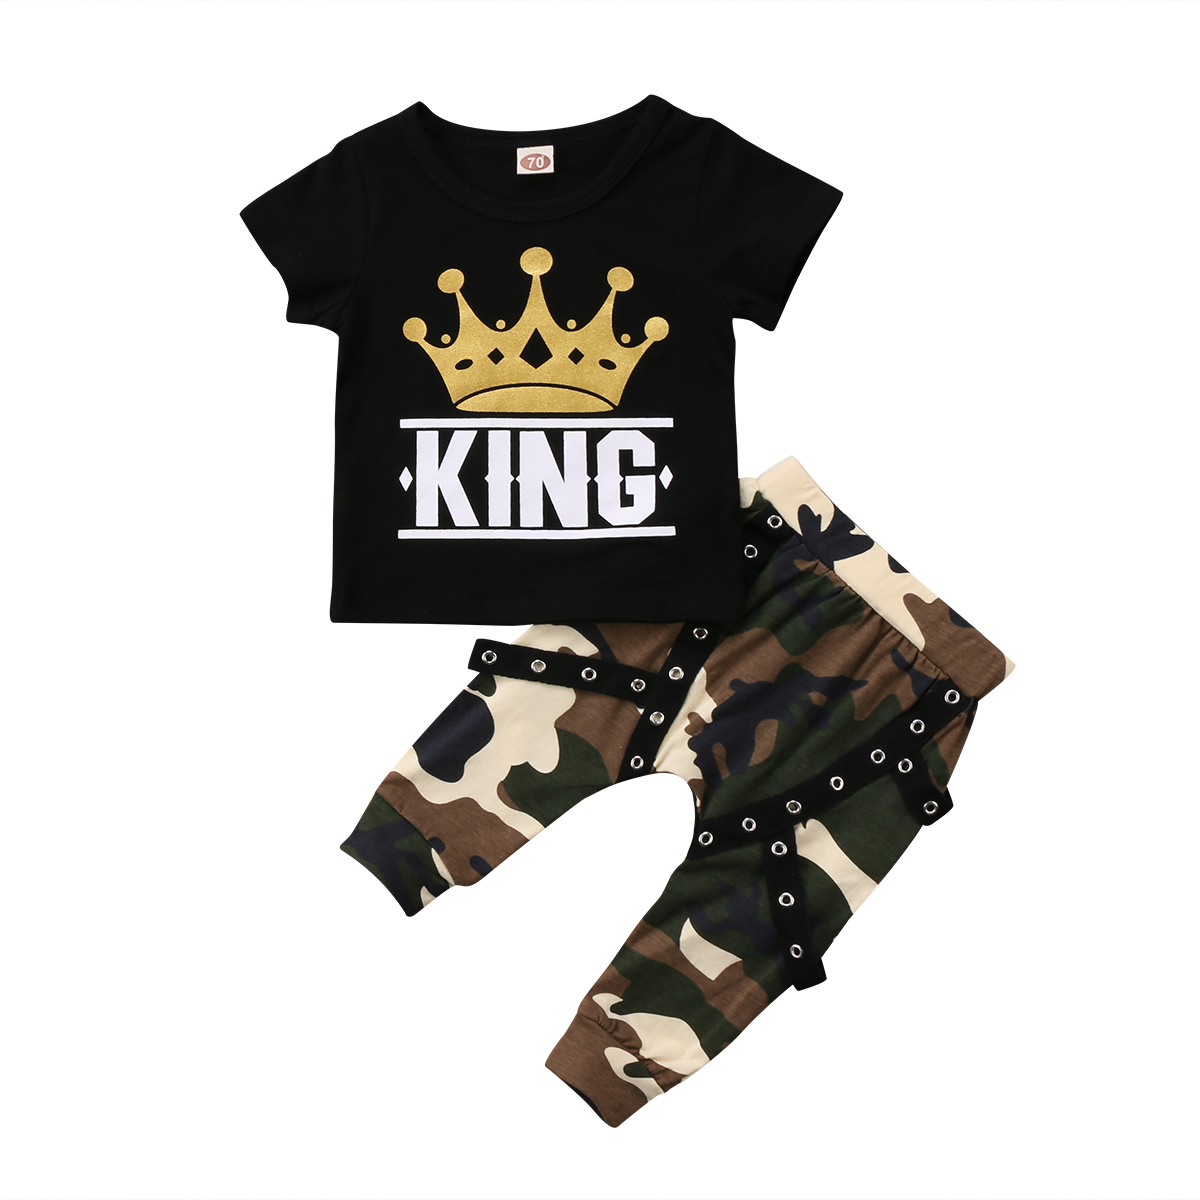 Toddler Kids Baby Boys Clothing Tops T-shirt Short Sleeve Crown Camo Pants Cotton Casual Outfits Clothes Boy 1-5T newborn toddler baby boy girl camo t shirt tops pants outfits set clothes 0 24m cotton casual short sleeve kids sets